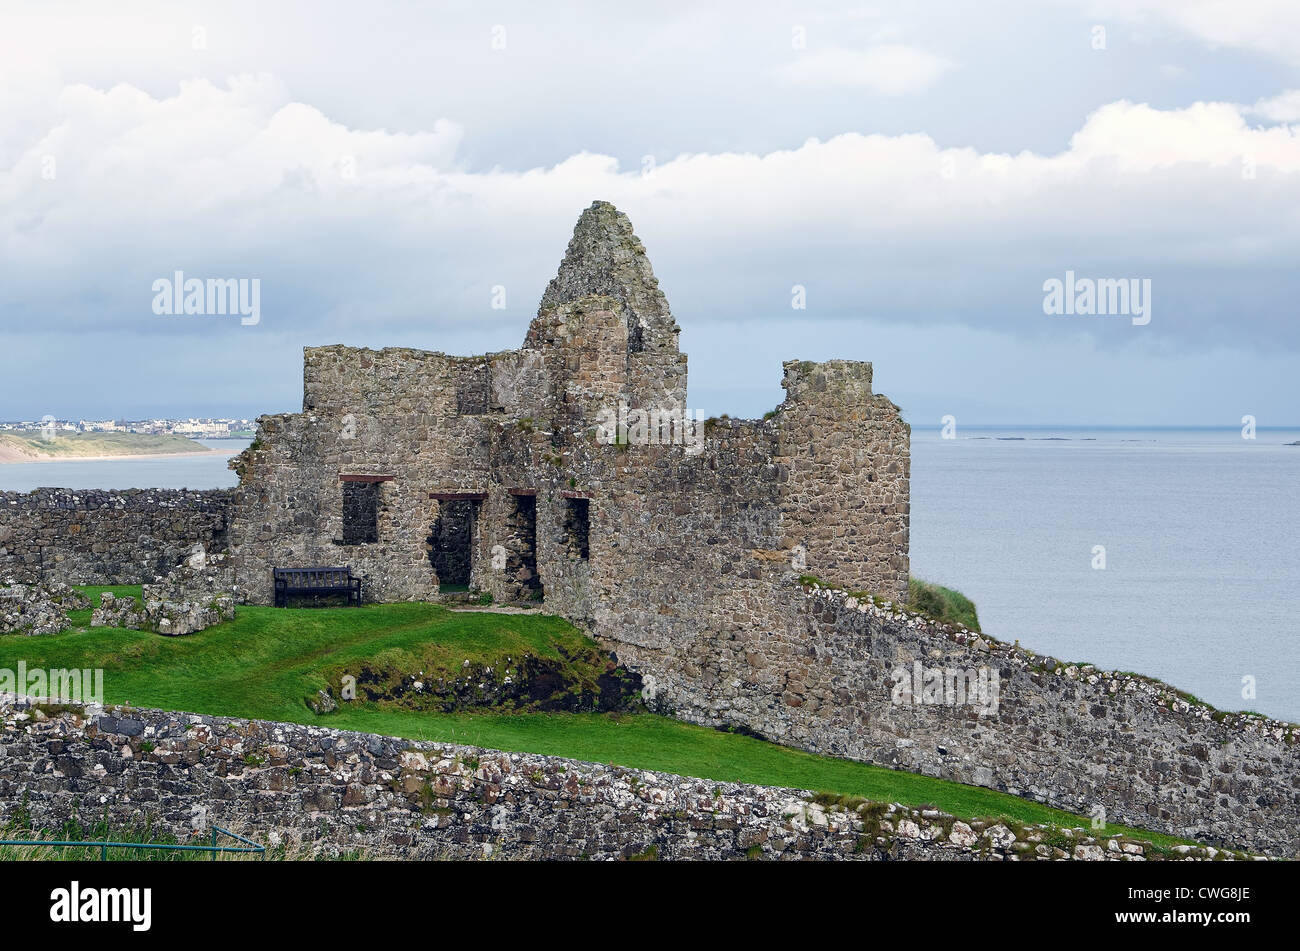 Dunluce Castle in County Antrim, Northern Ireland Stock Photo